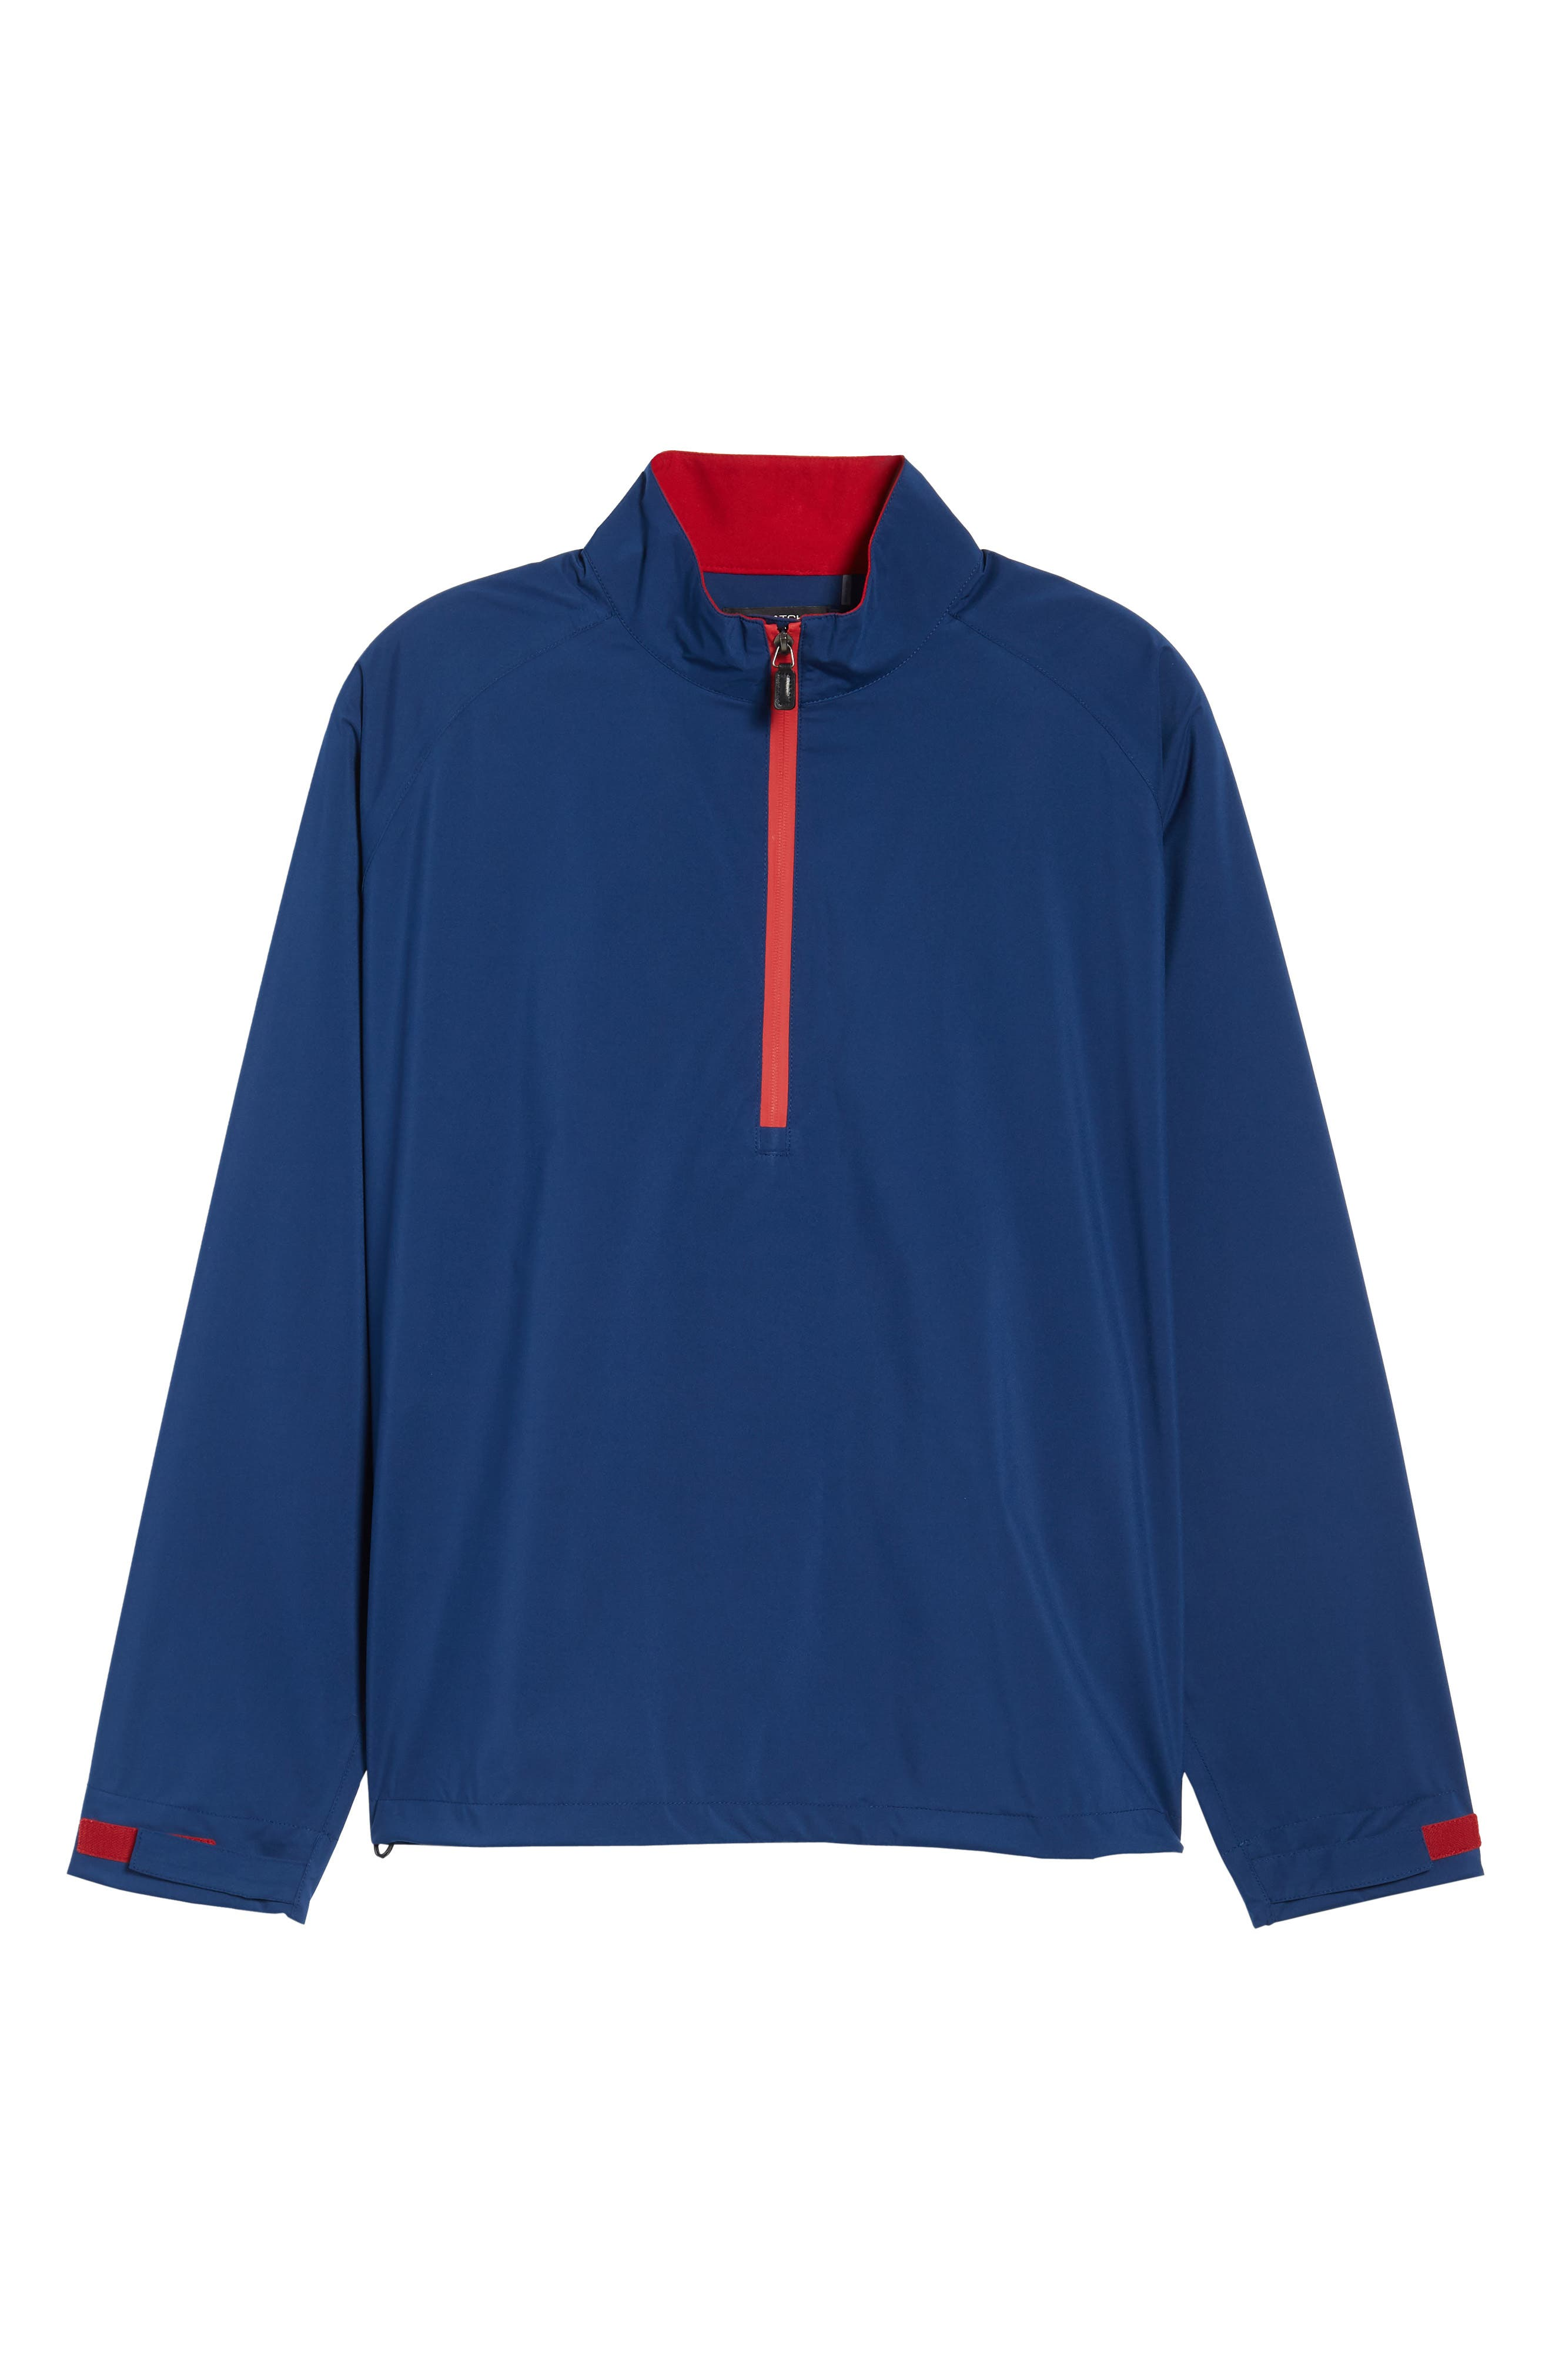 Regular Fit Half Zip Performance Pullover,                             Alternate thumbnail 11, color,